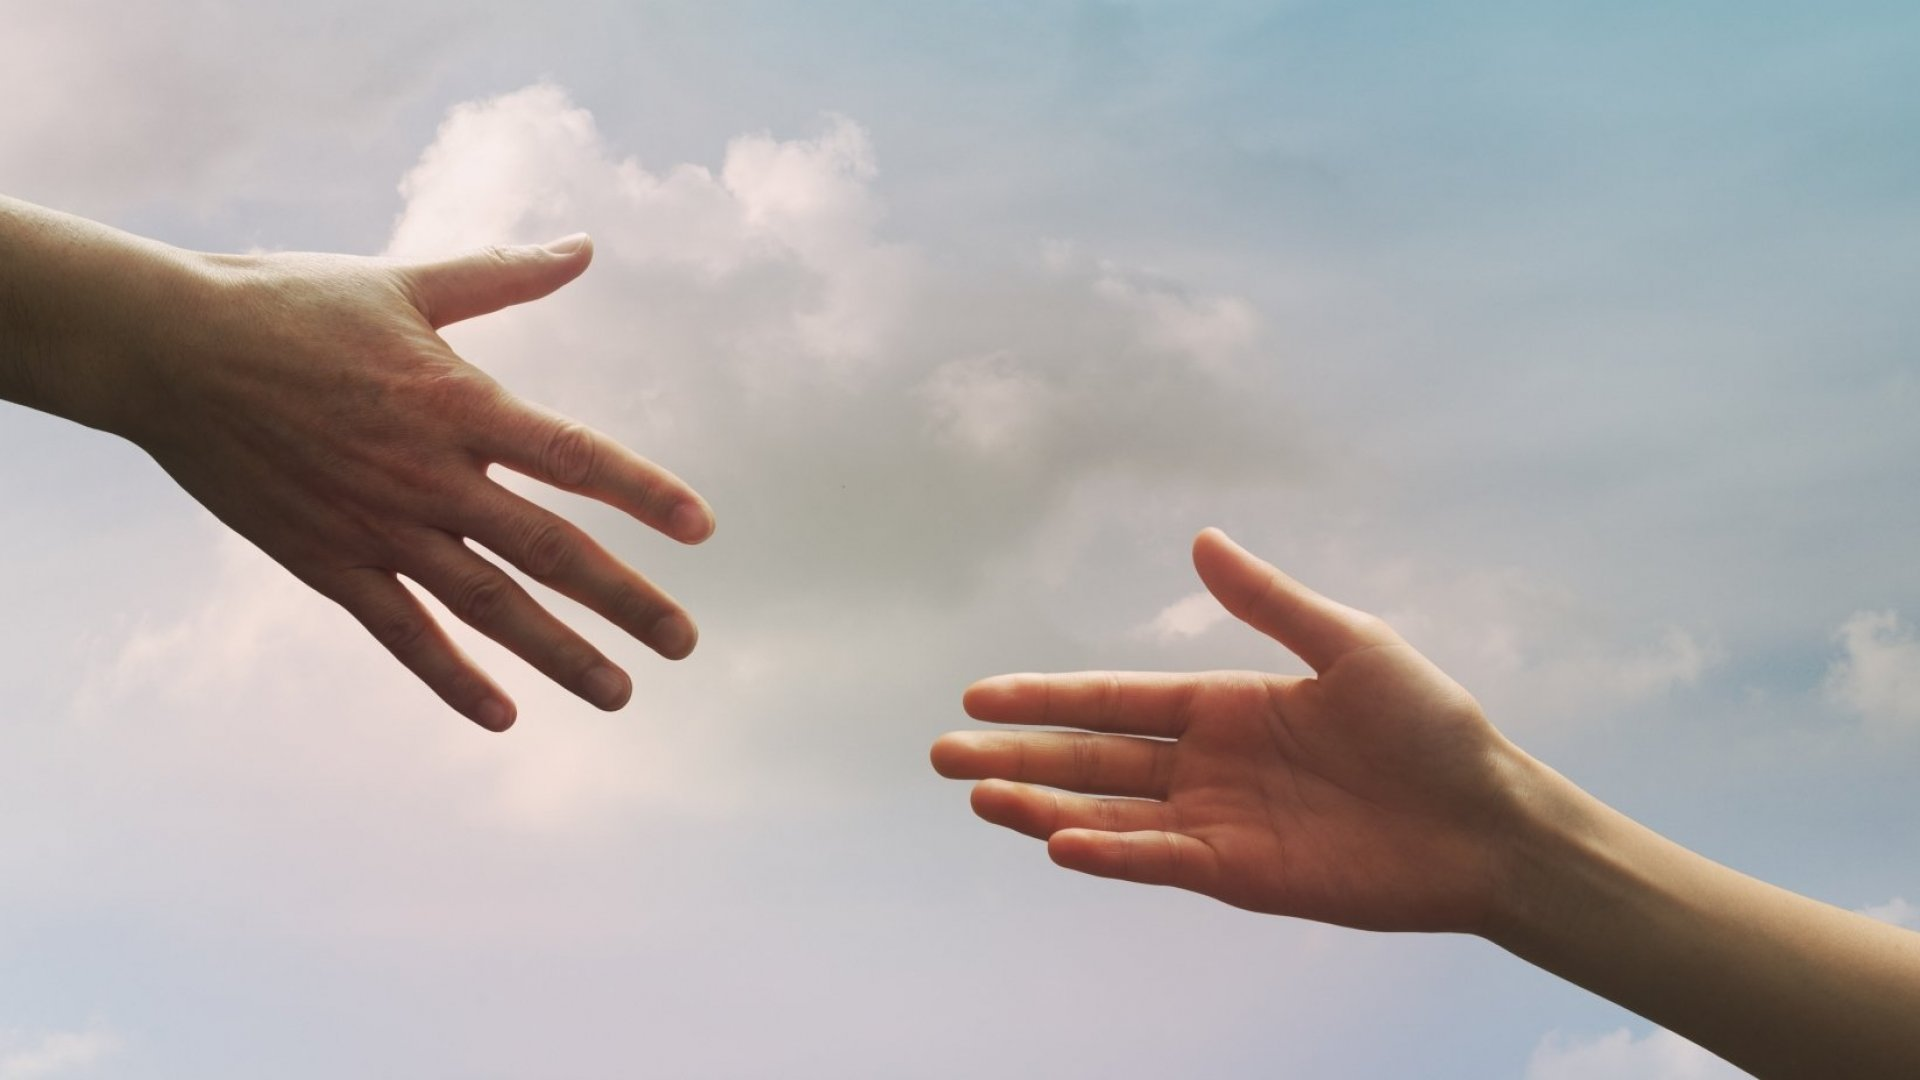 4 Ways To Build High-Trust Organizations That Get Better Results